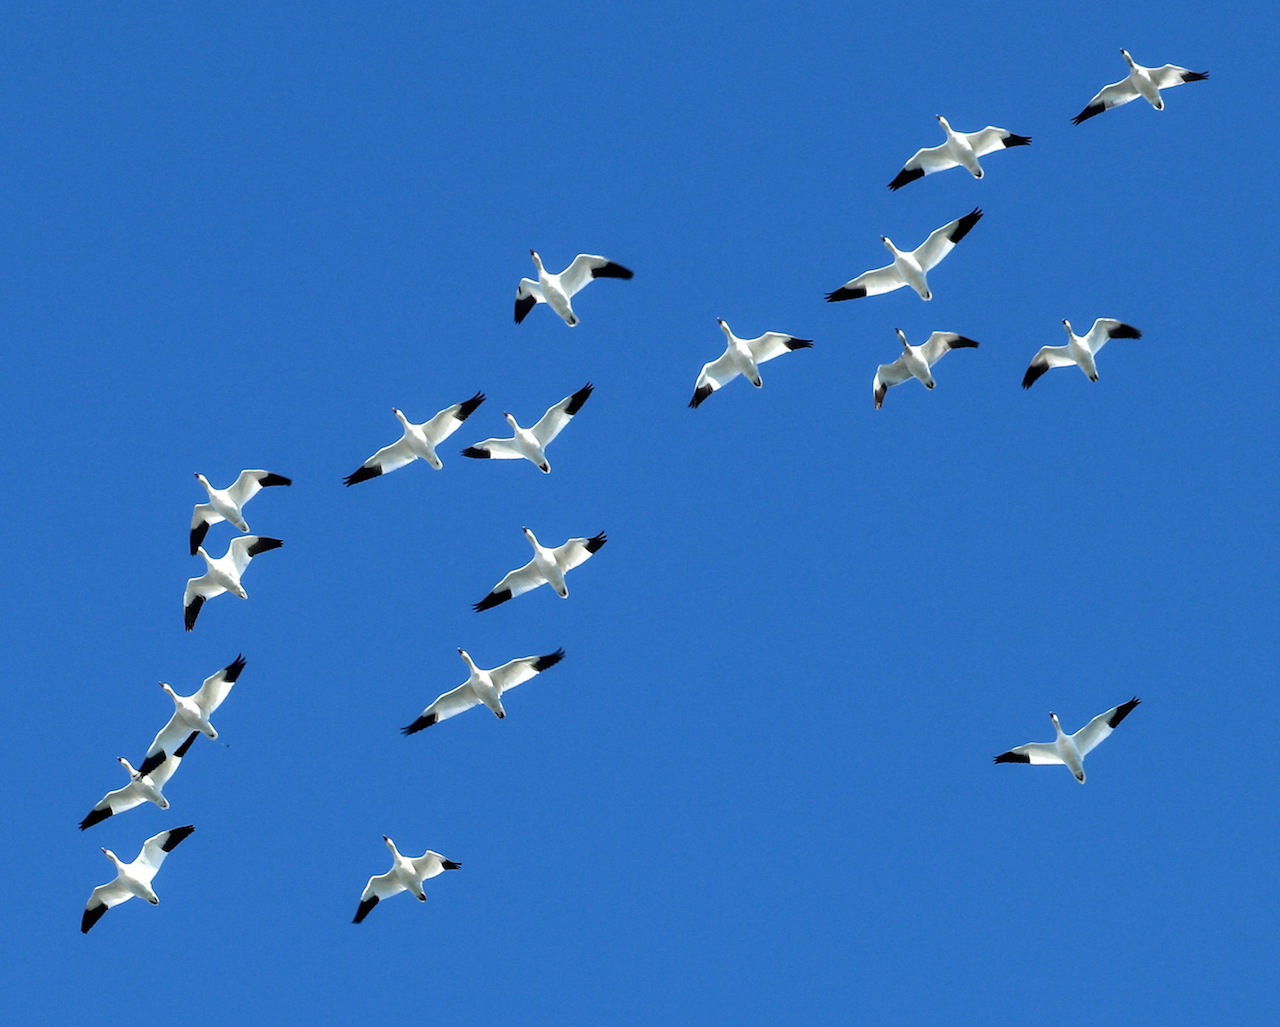 Snow geese flyover (photo)